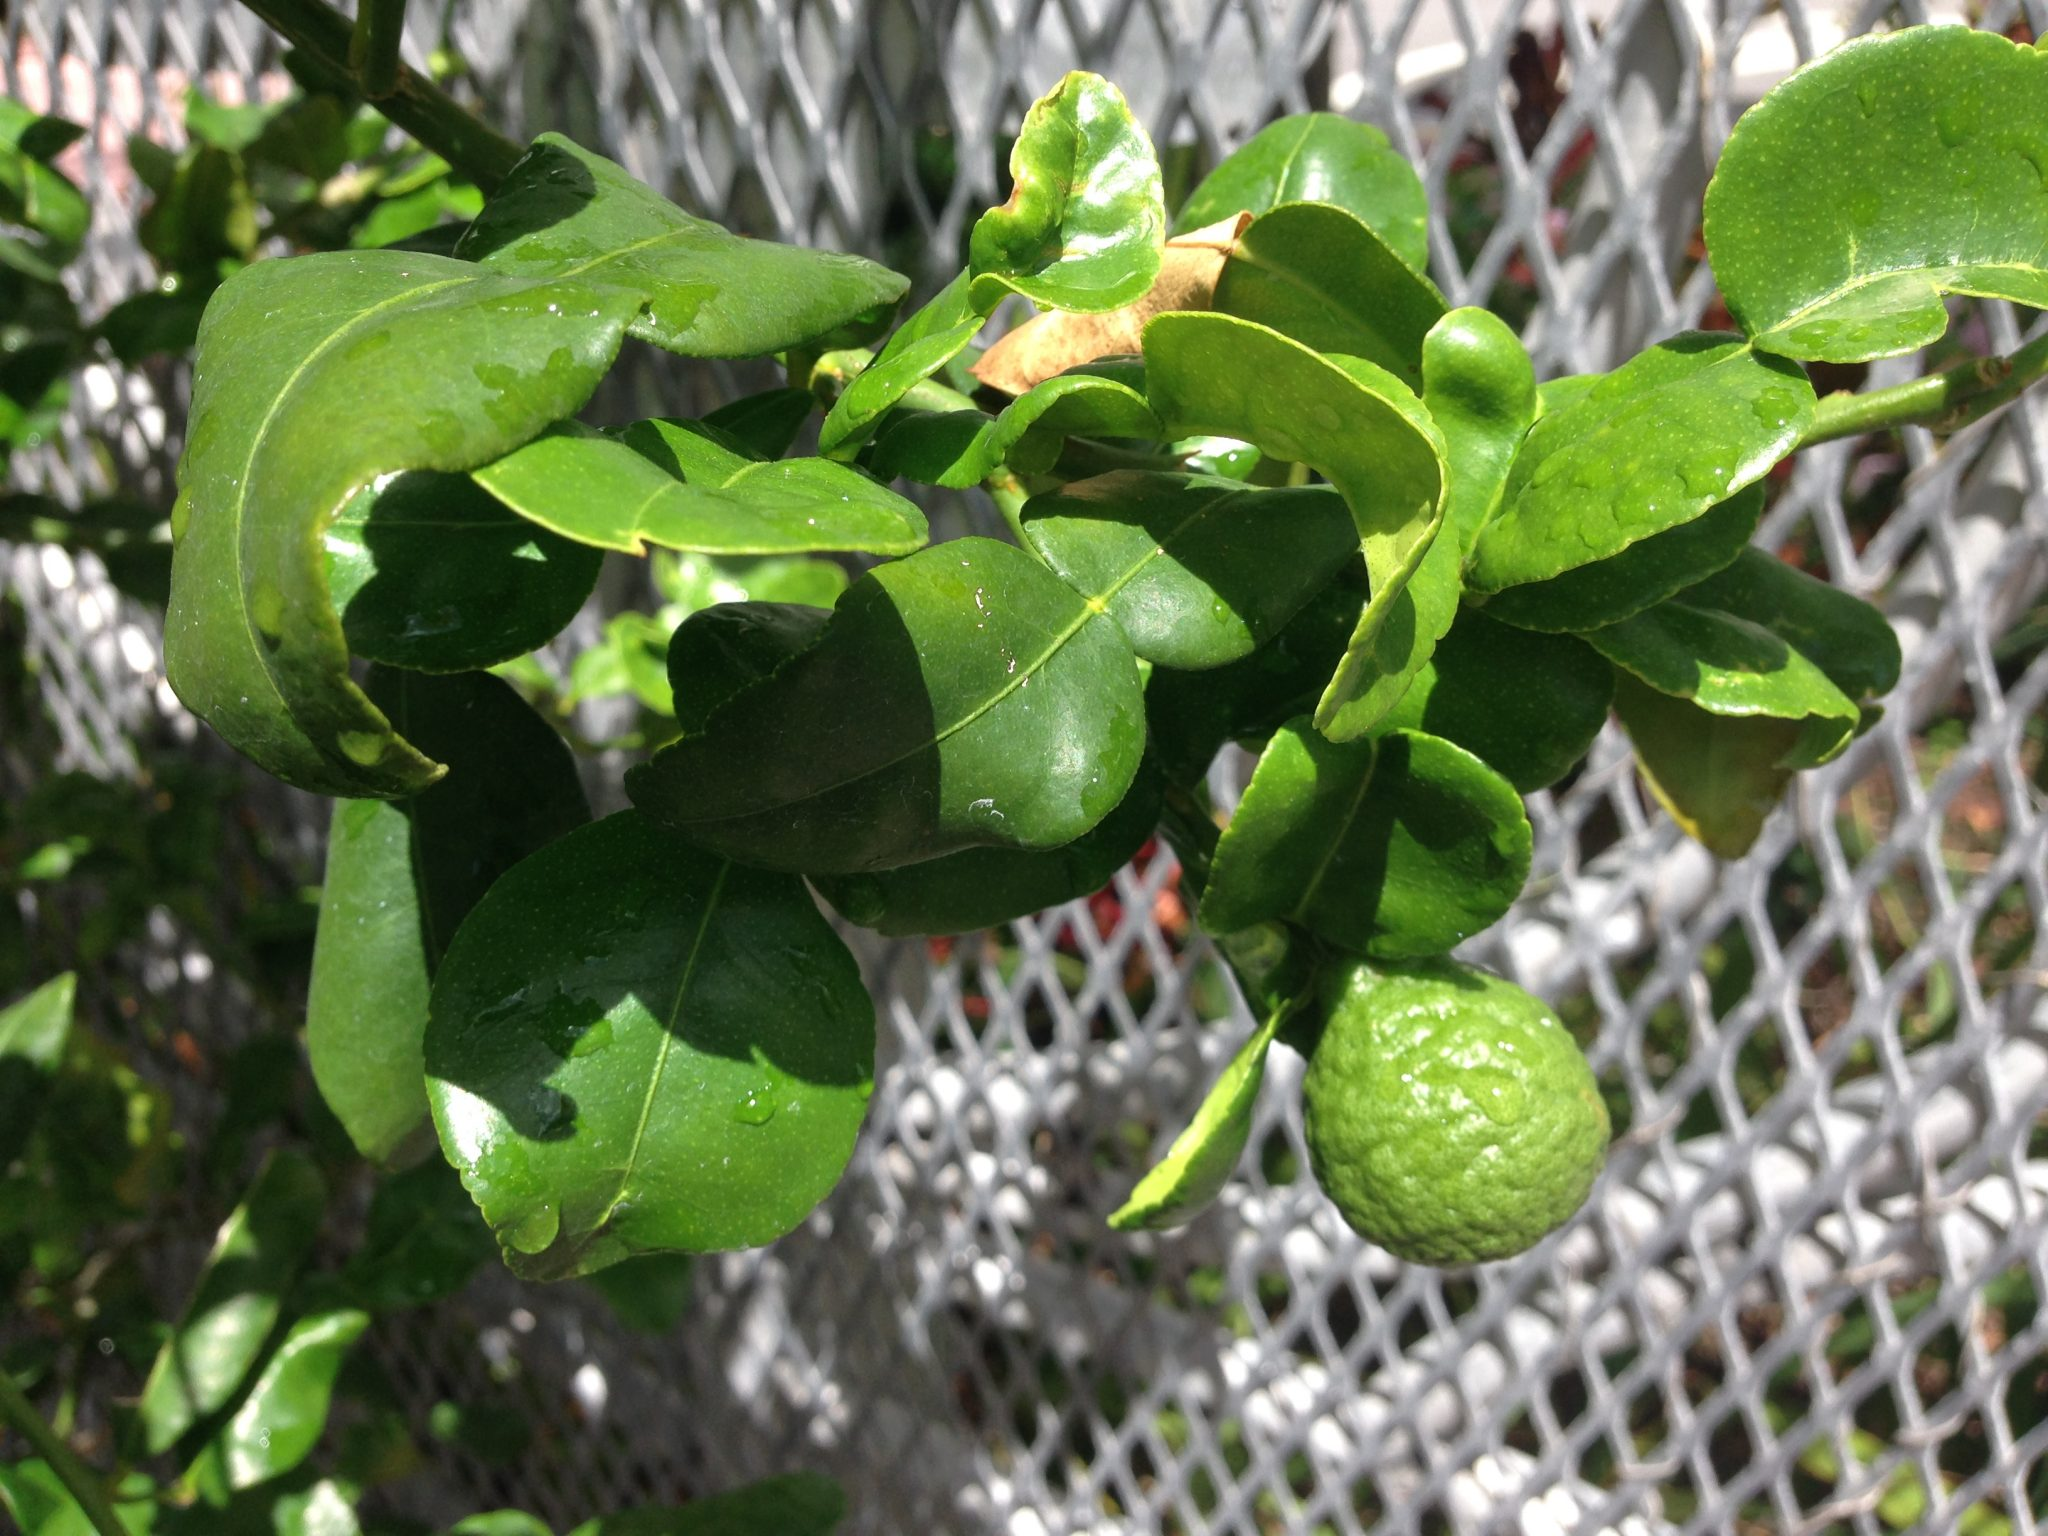 Kaffir lime tree leaves add authentic Thai flavors to curries, salads and stir fries